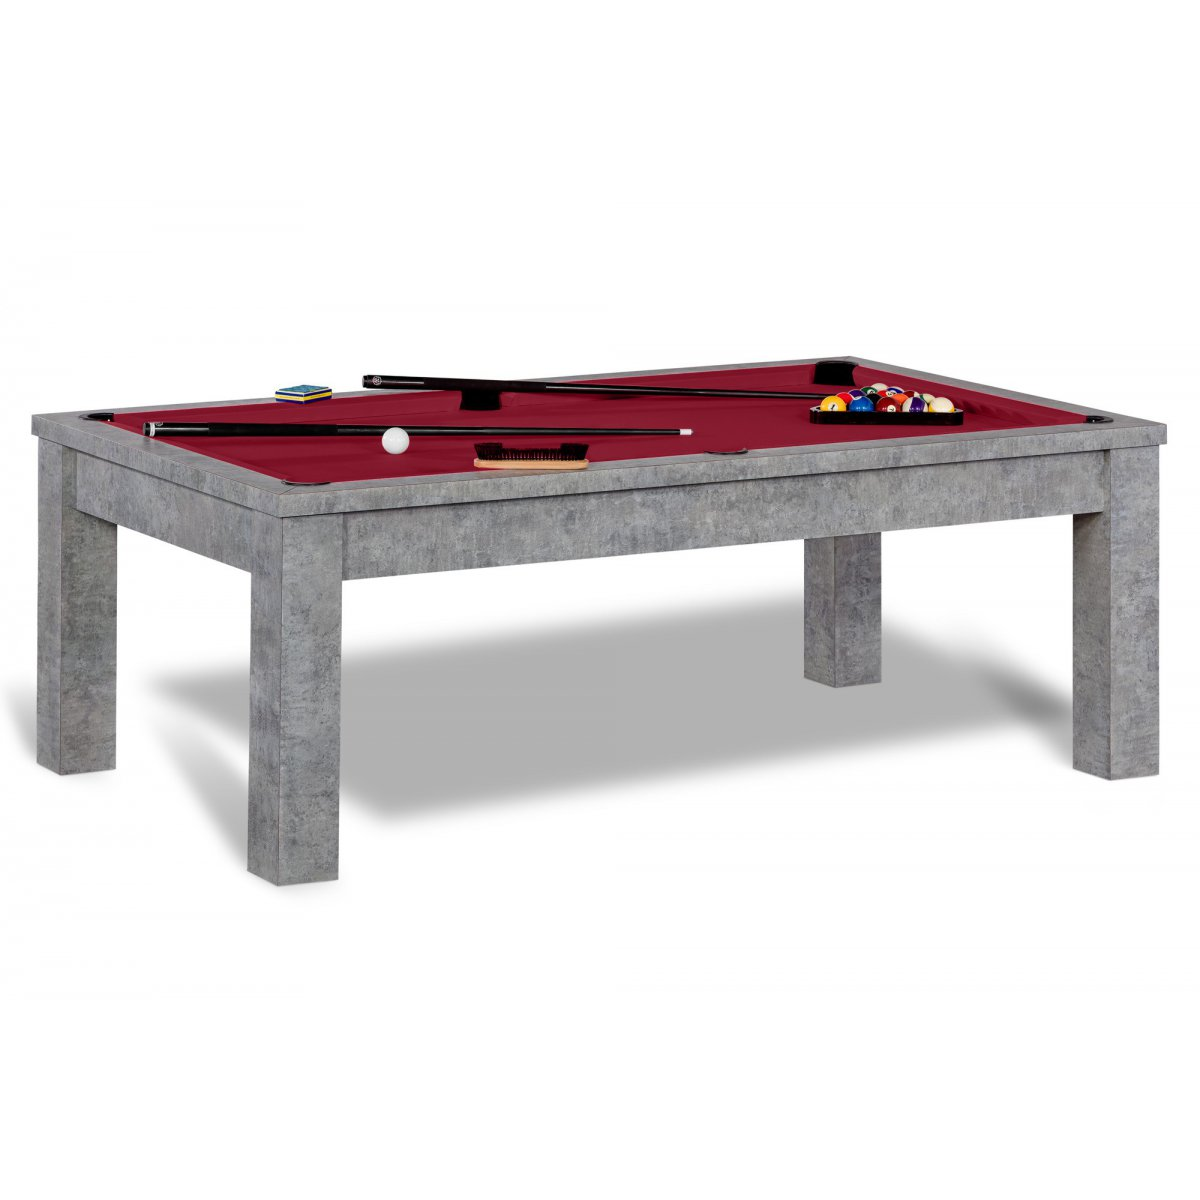 Table billard convertible panama billard anglais americain - Billard convertible table ...